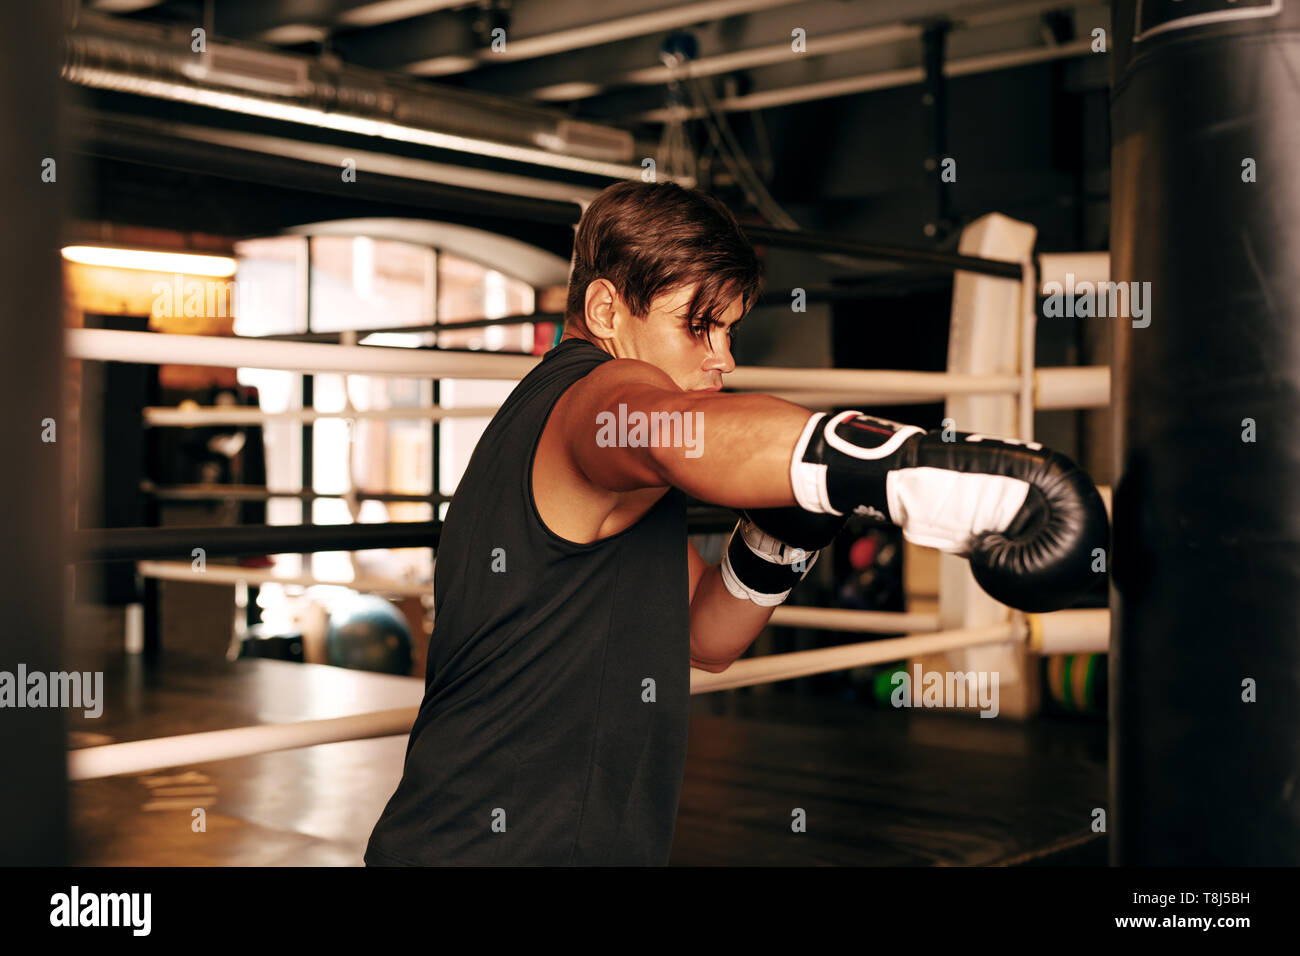 Muscular athlete working out in a gym on a leather punching bag - Stock Image